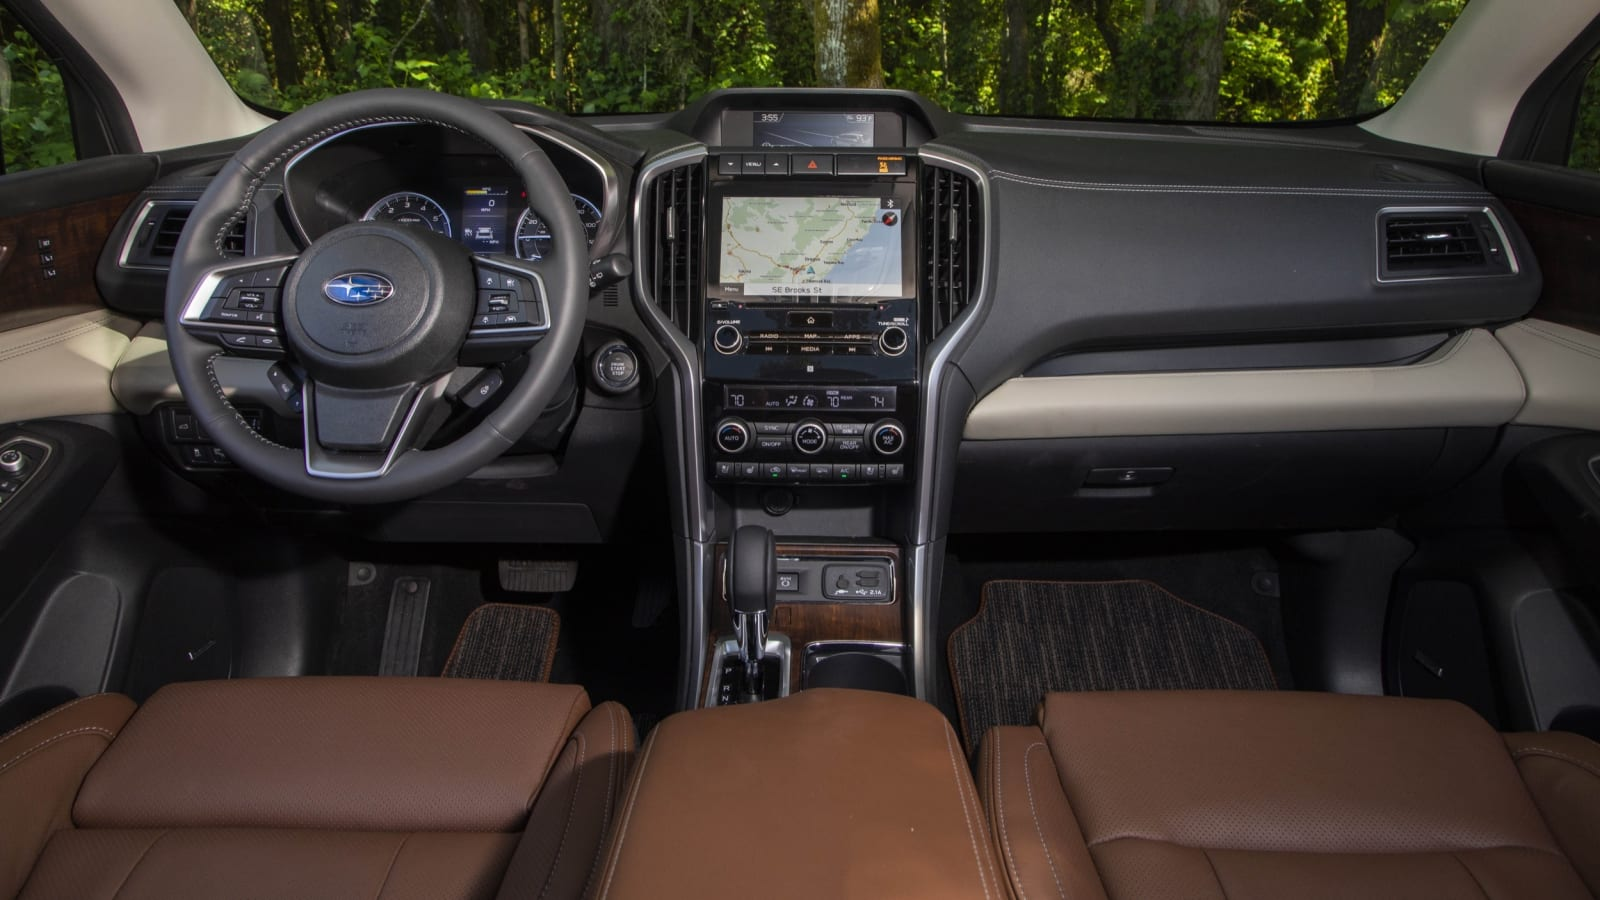 2020 Subaru Ascent Reviews | Price, specs, features and ...